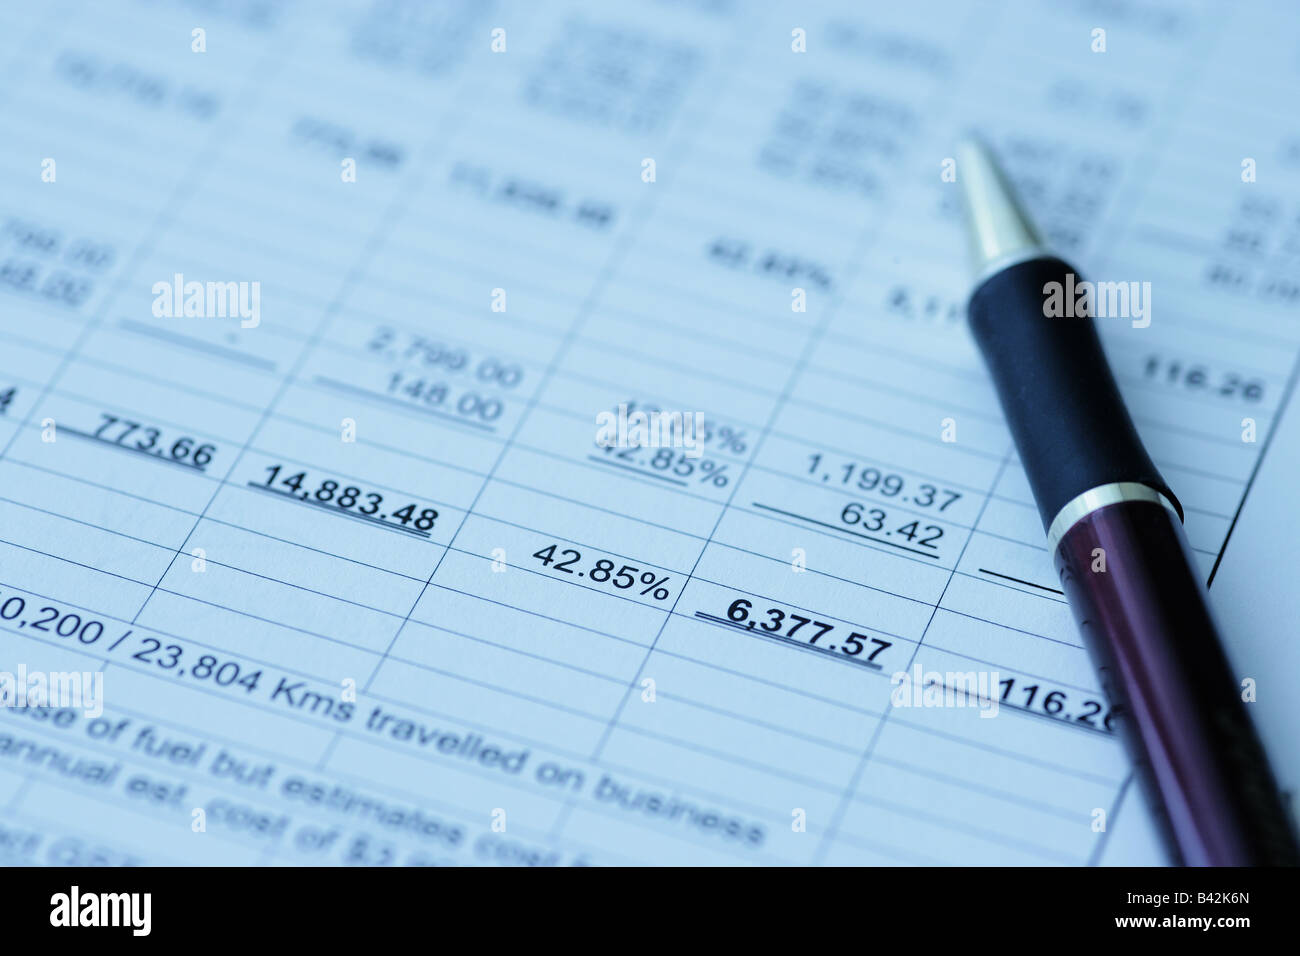 Business financial results - Calculating budget - Stock Image